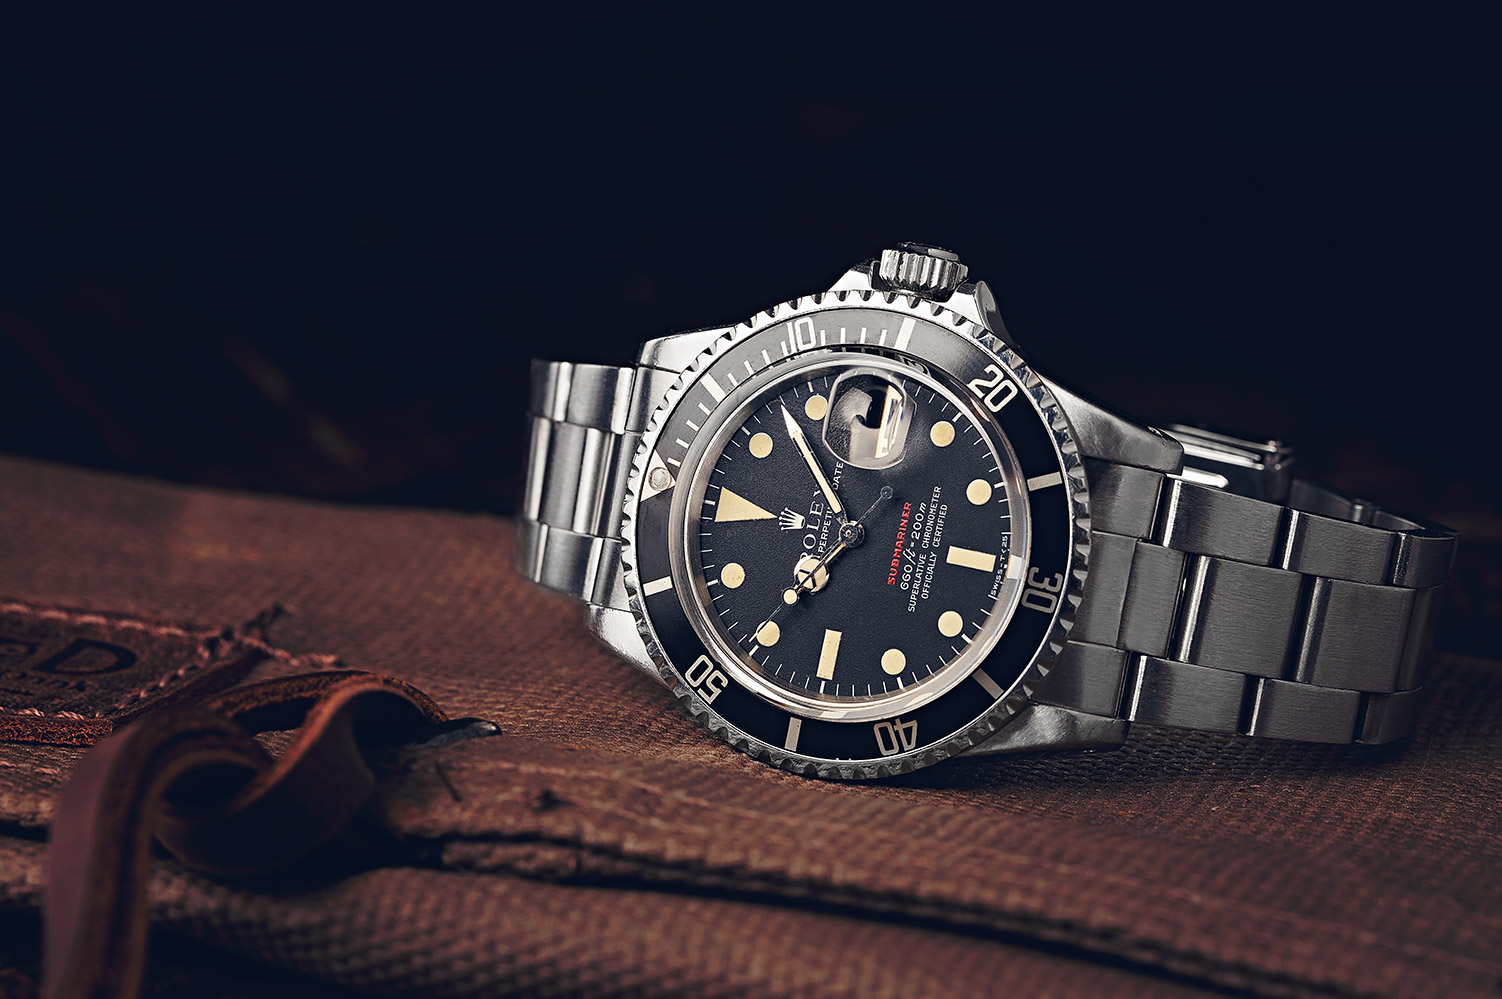 Tips for taking care of your rolex